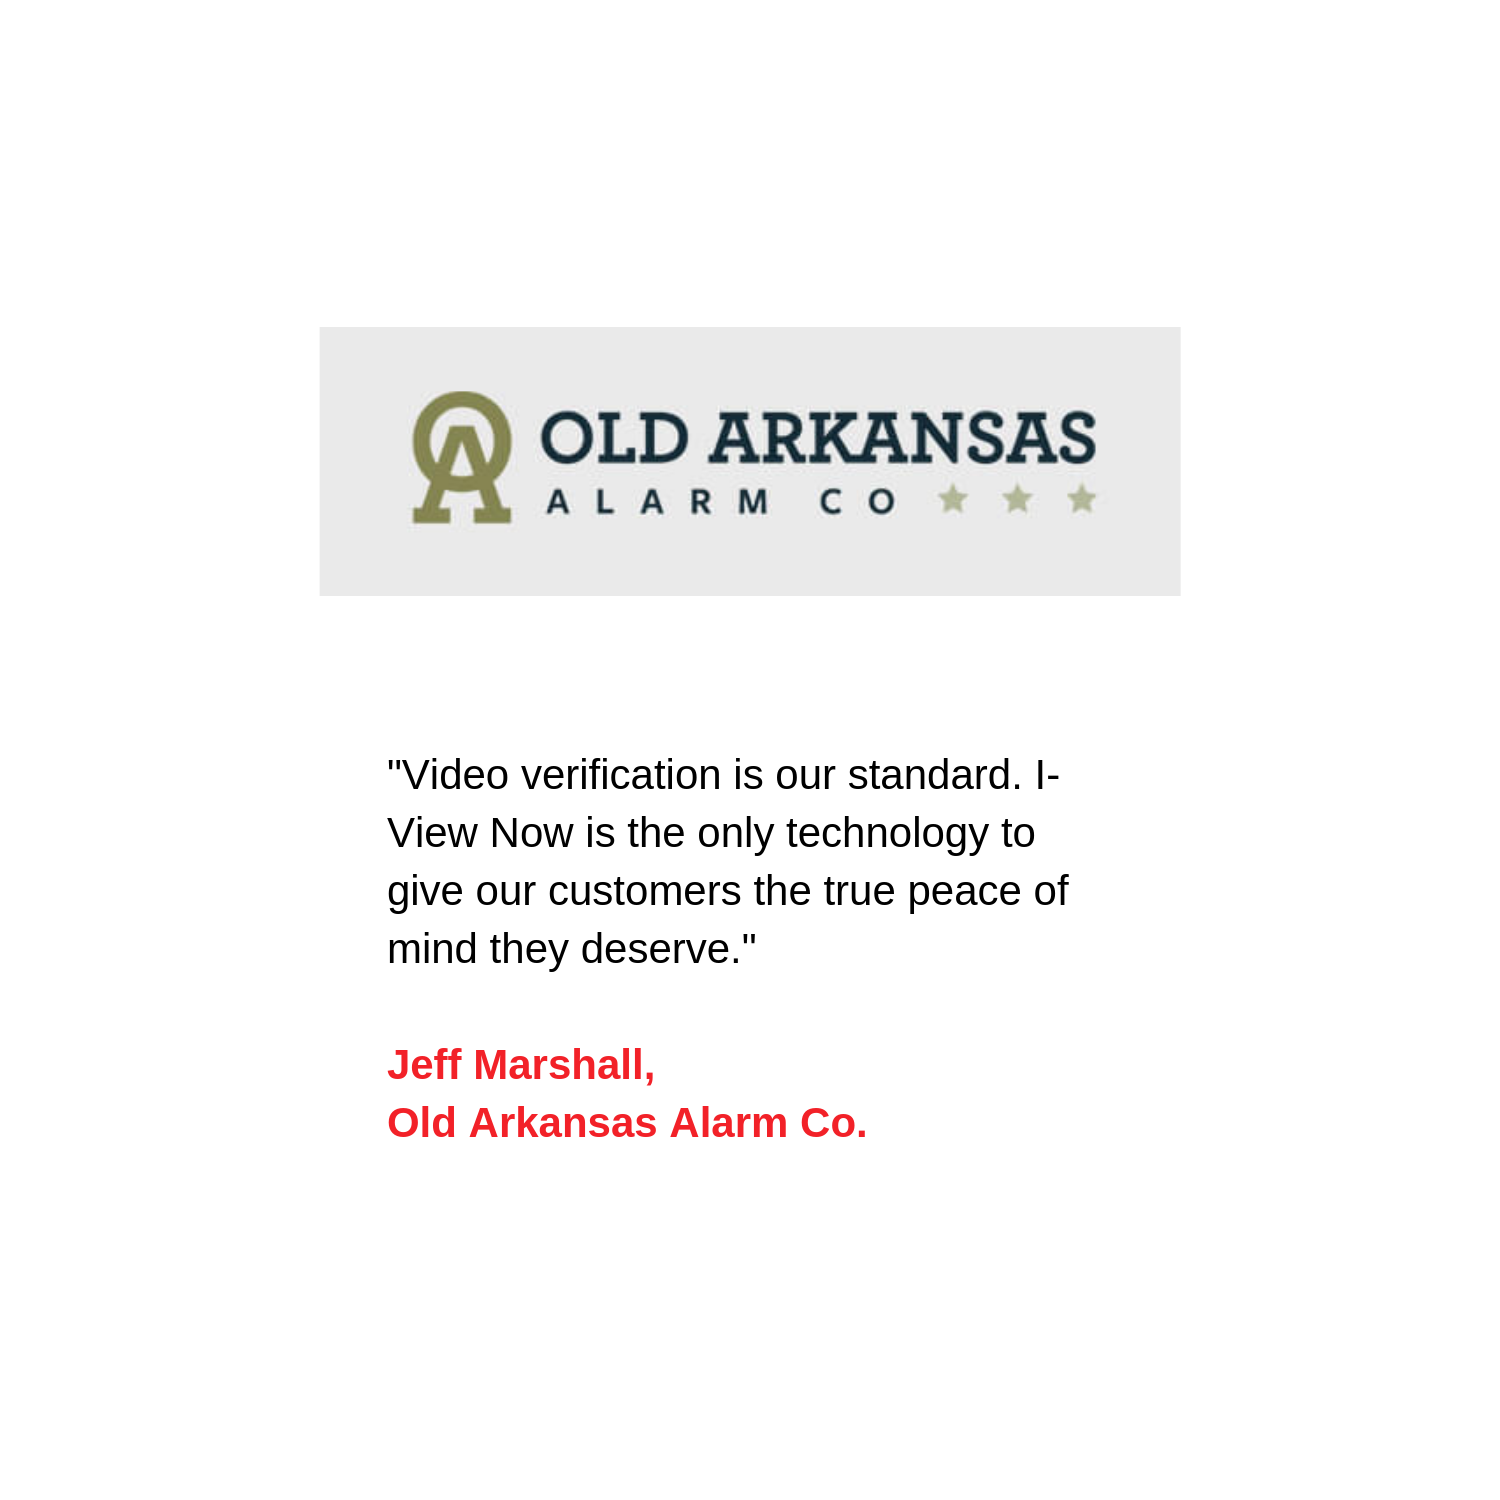 I-View Now - Old Arkansas Alarm Co quote 1500x1500.png